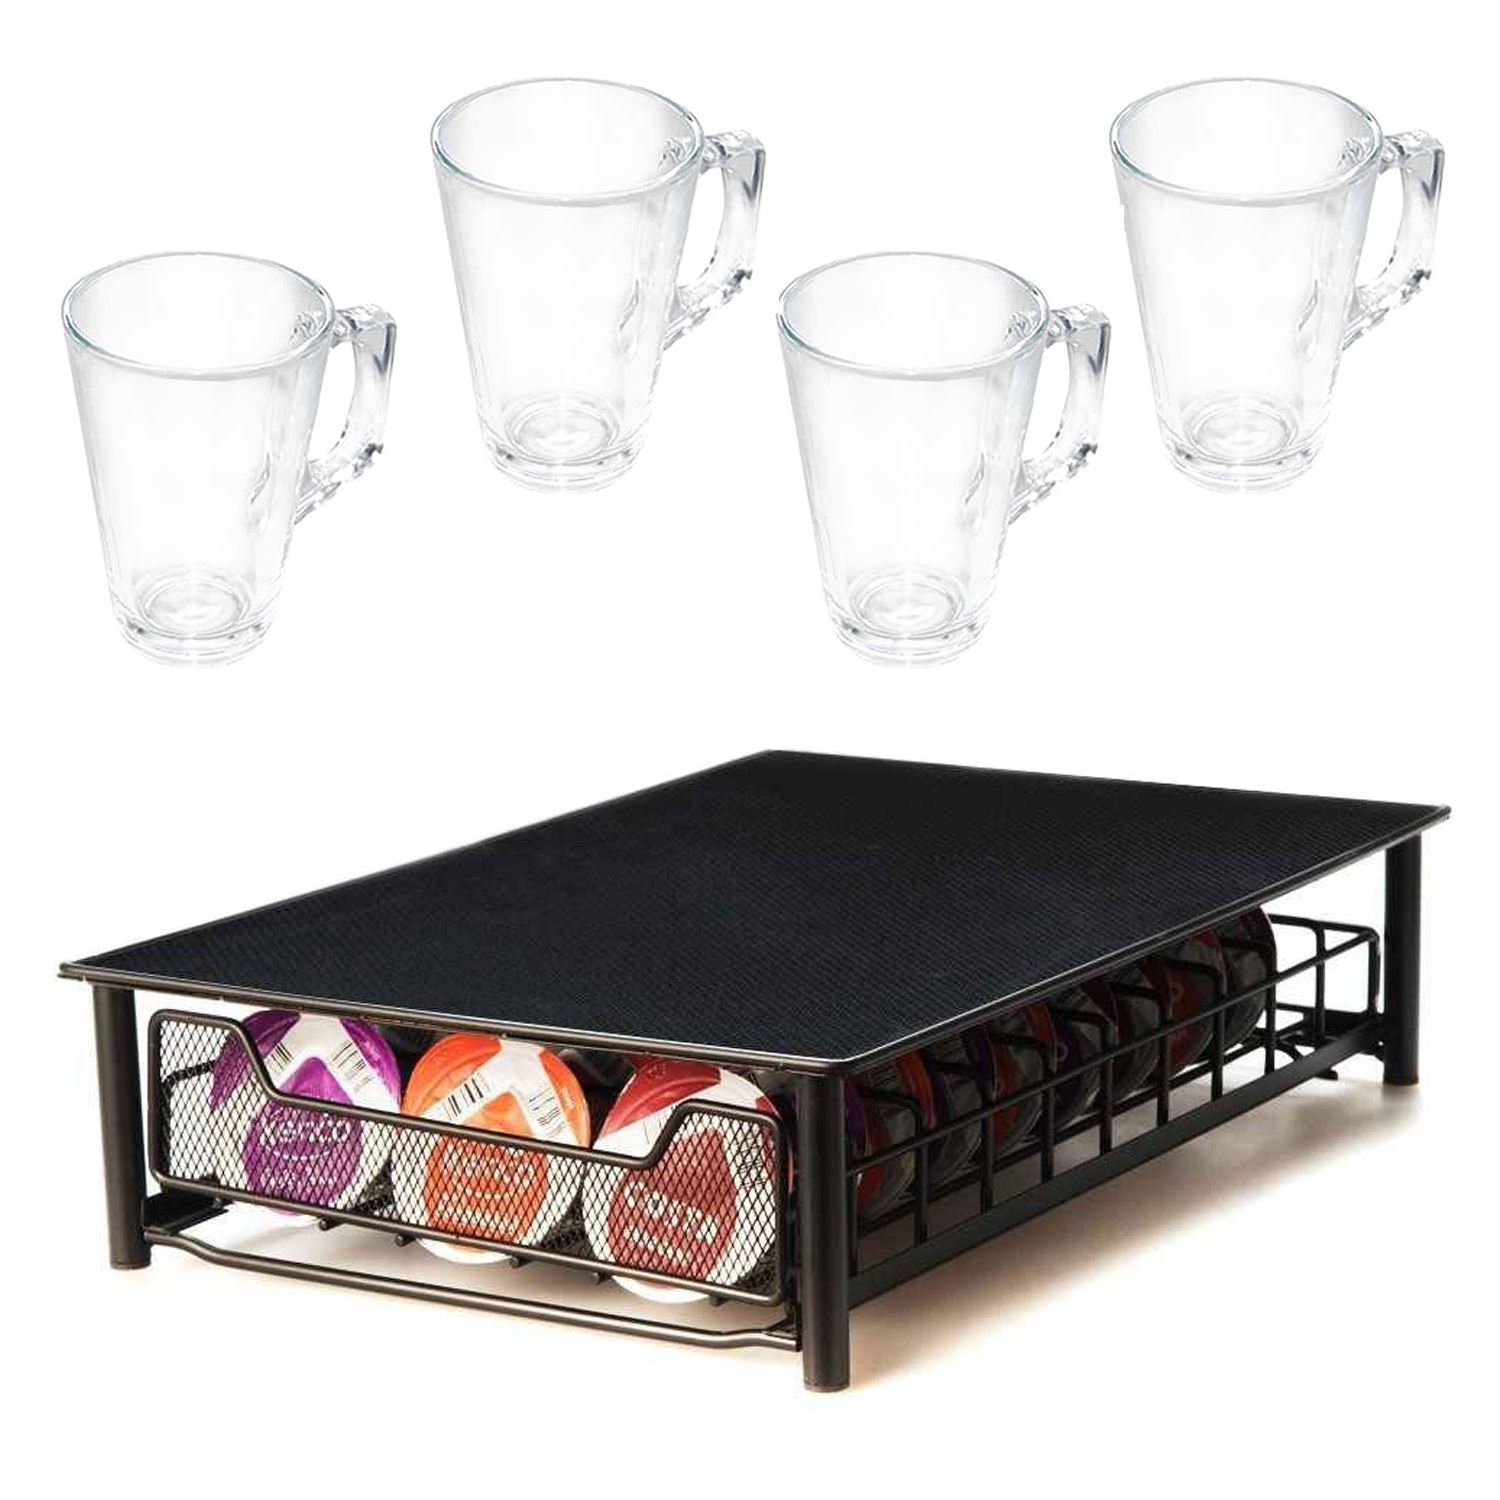 Direct Online Houseware RKW2534-B/RKG2248-S4 Coffee Capsule Drawer and Glasses Set, Black